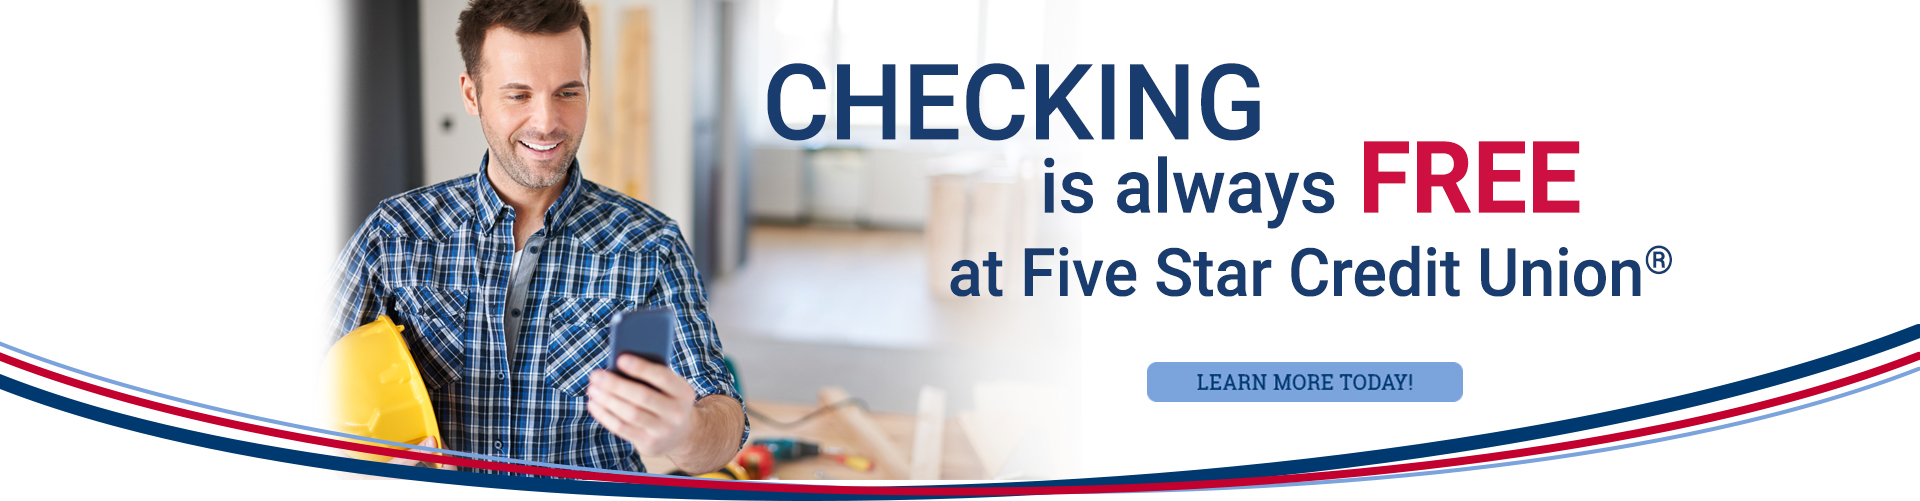 Checking is always free at Five Star Credit Union